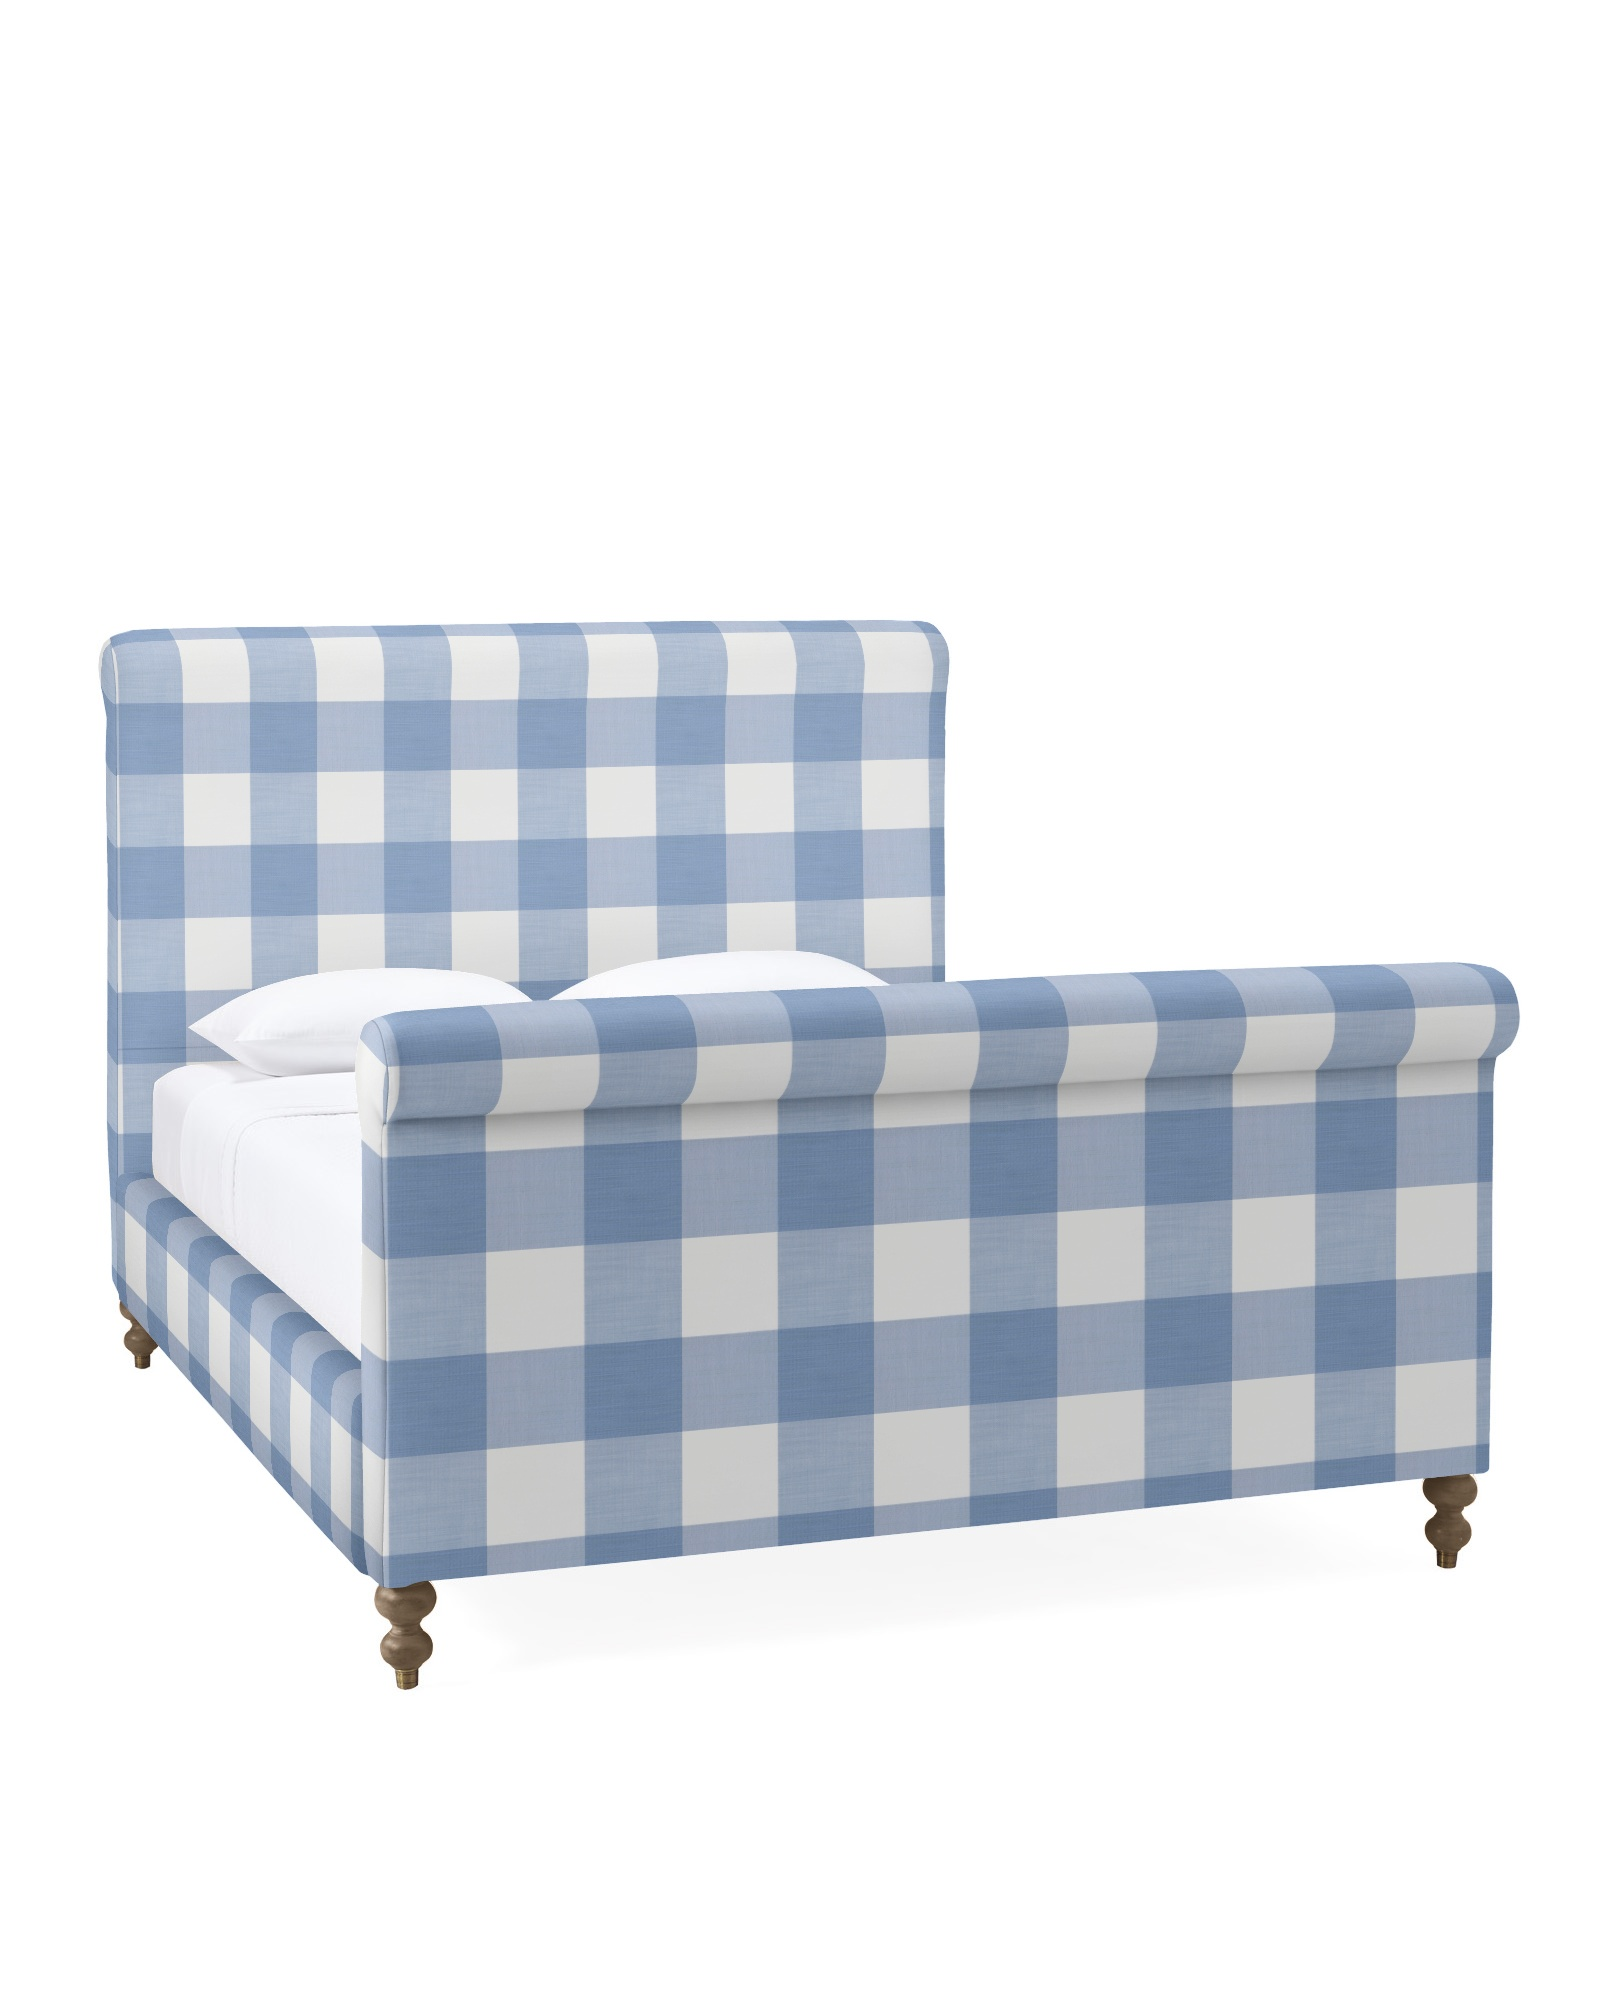 Cambridge Bed - Perennials® Coastal Blue Gingham,